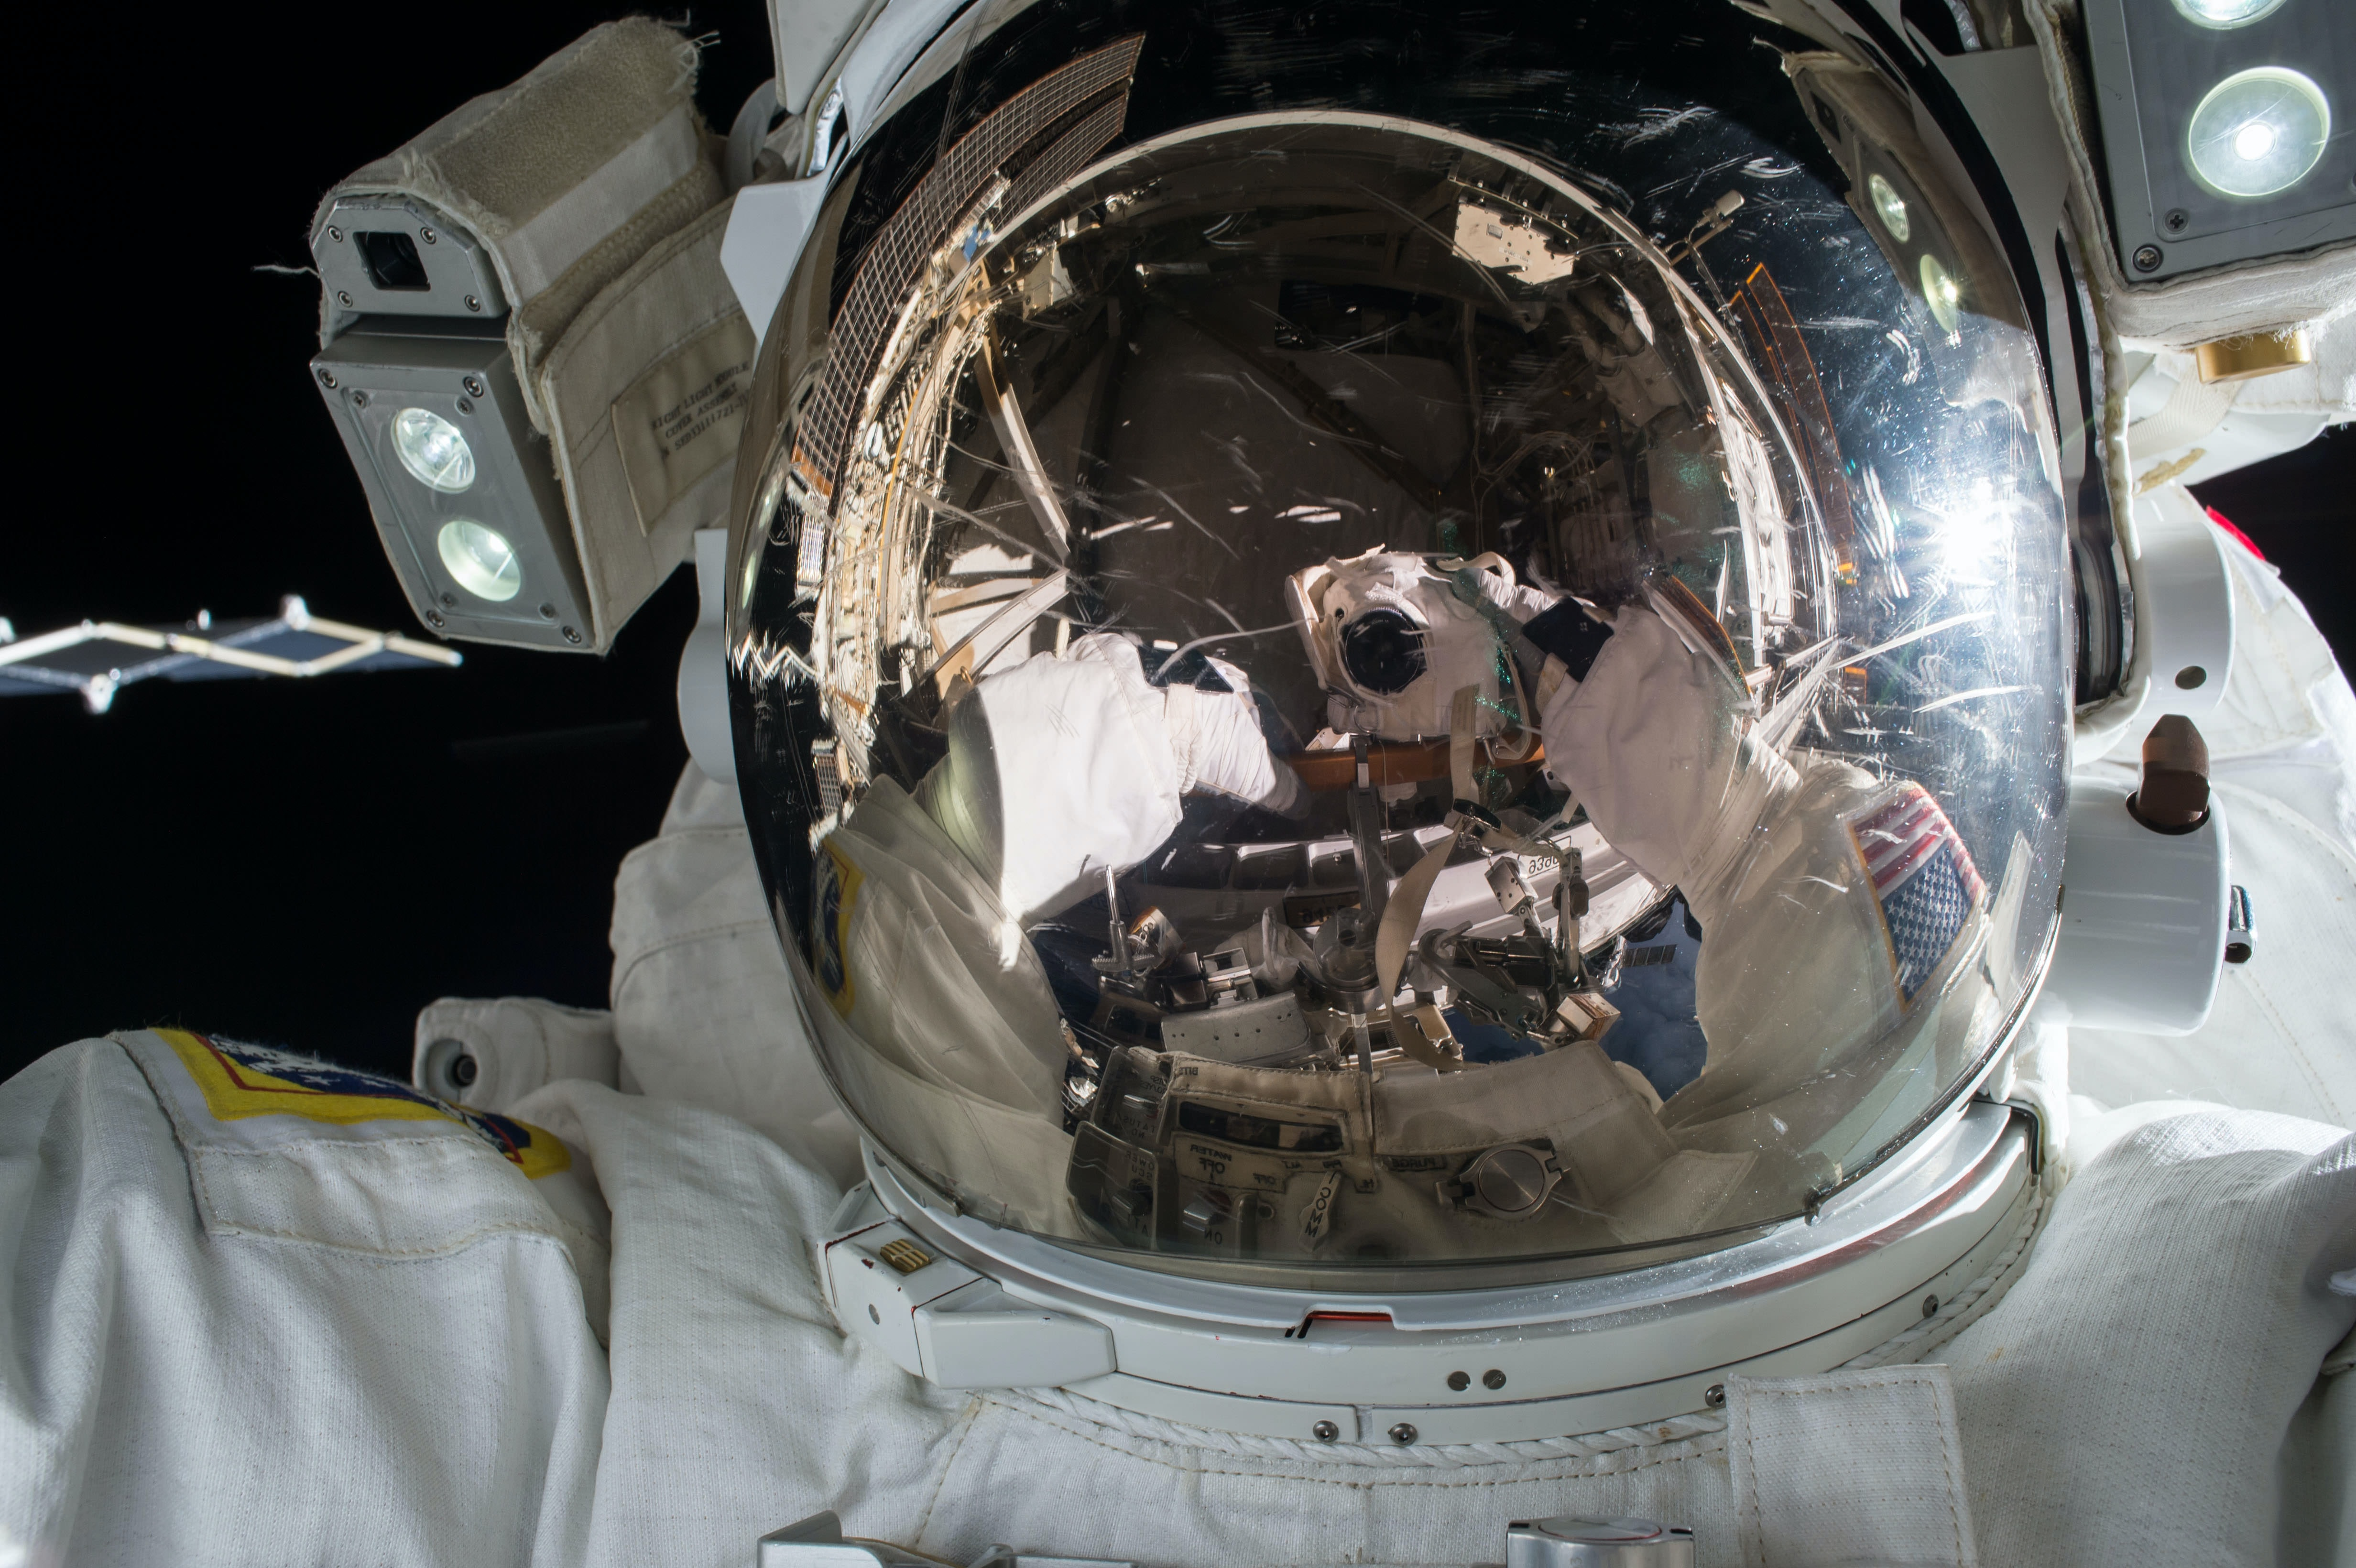 "<p>The first selfie on Unsplash comes from <a href=""https://unsplash.com/@nasa"">NASA</a>.</p>"